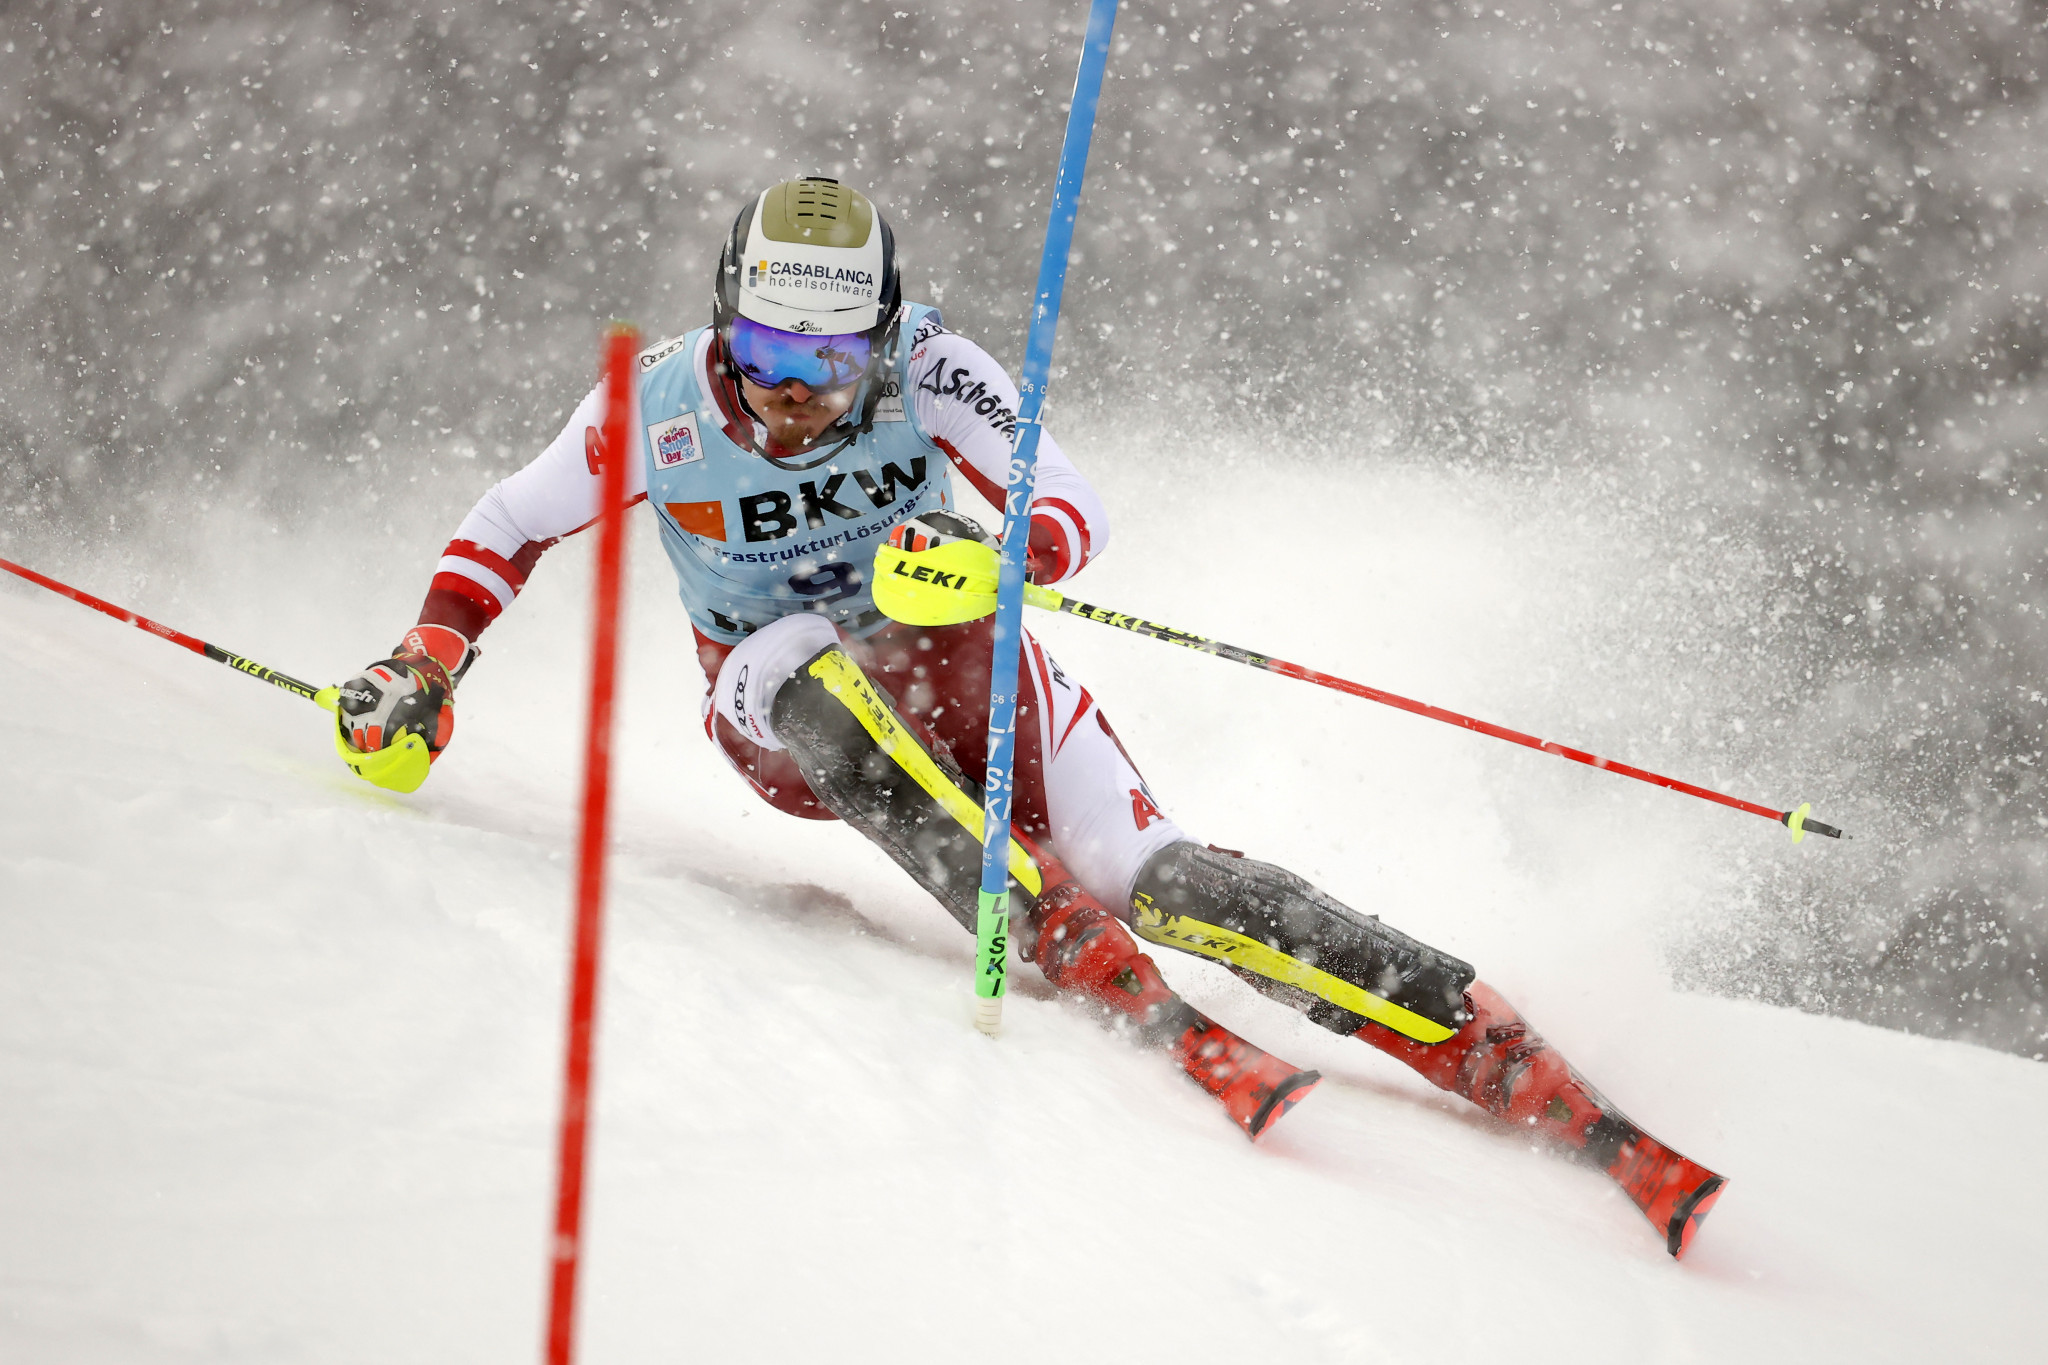 Manuel Feller leads the men's slalom standings following his victory ©Getty Images